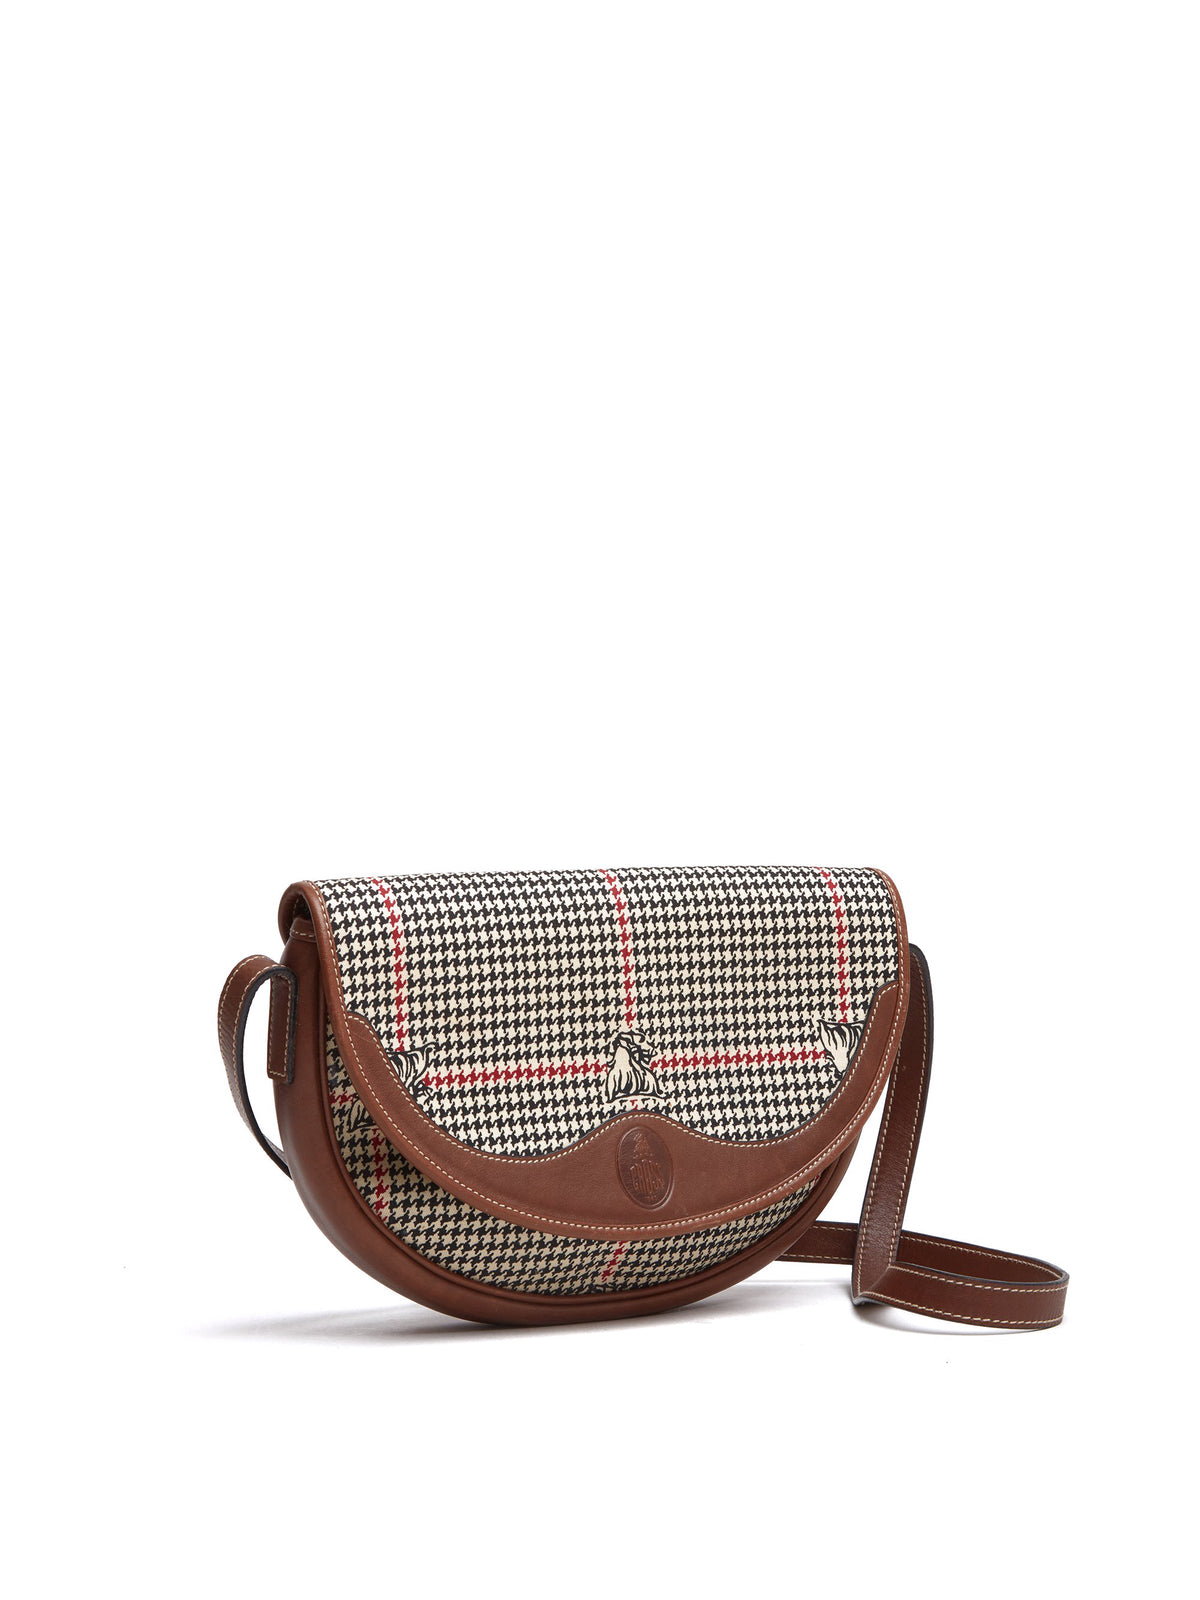 Vintage Houndstooth Leather Shoulder Bag